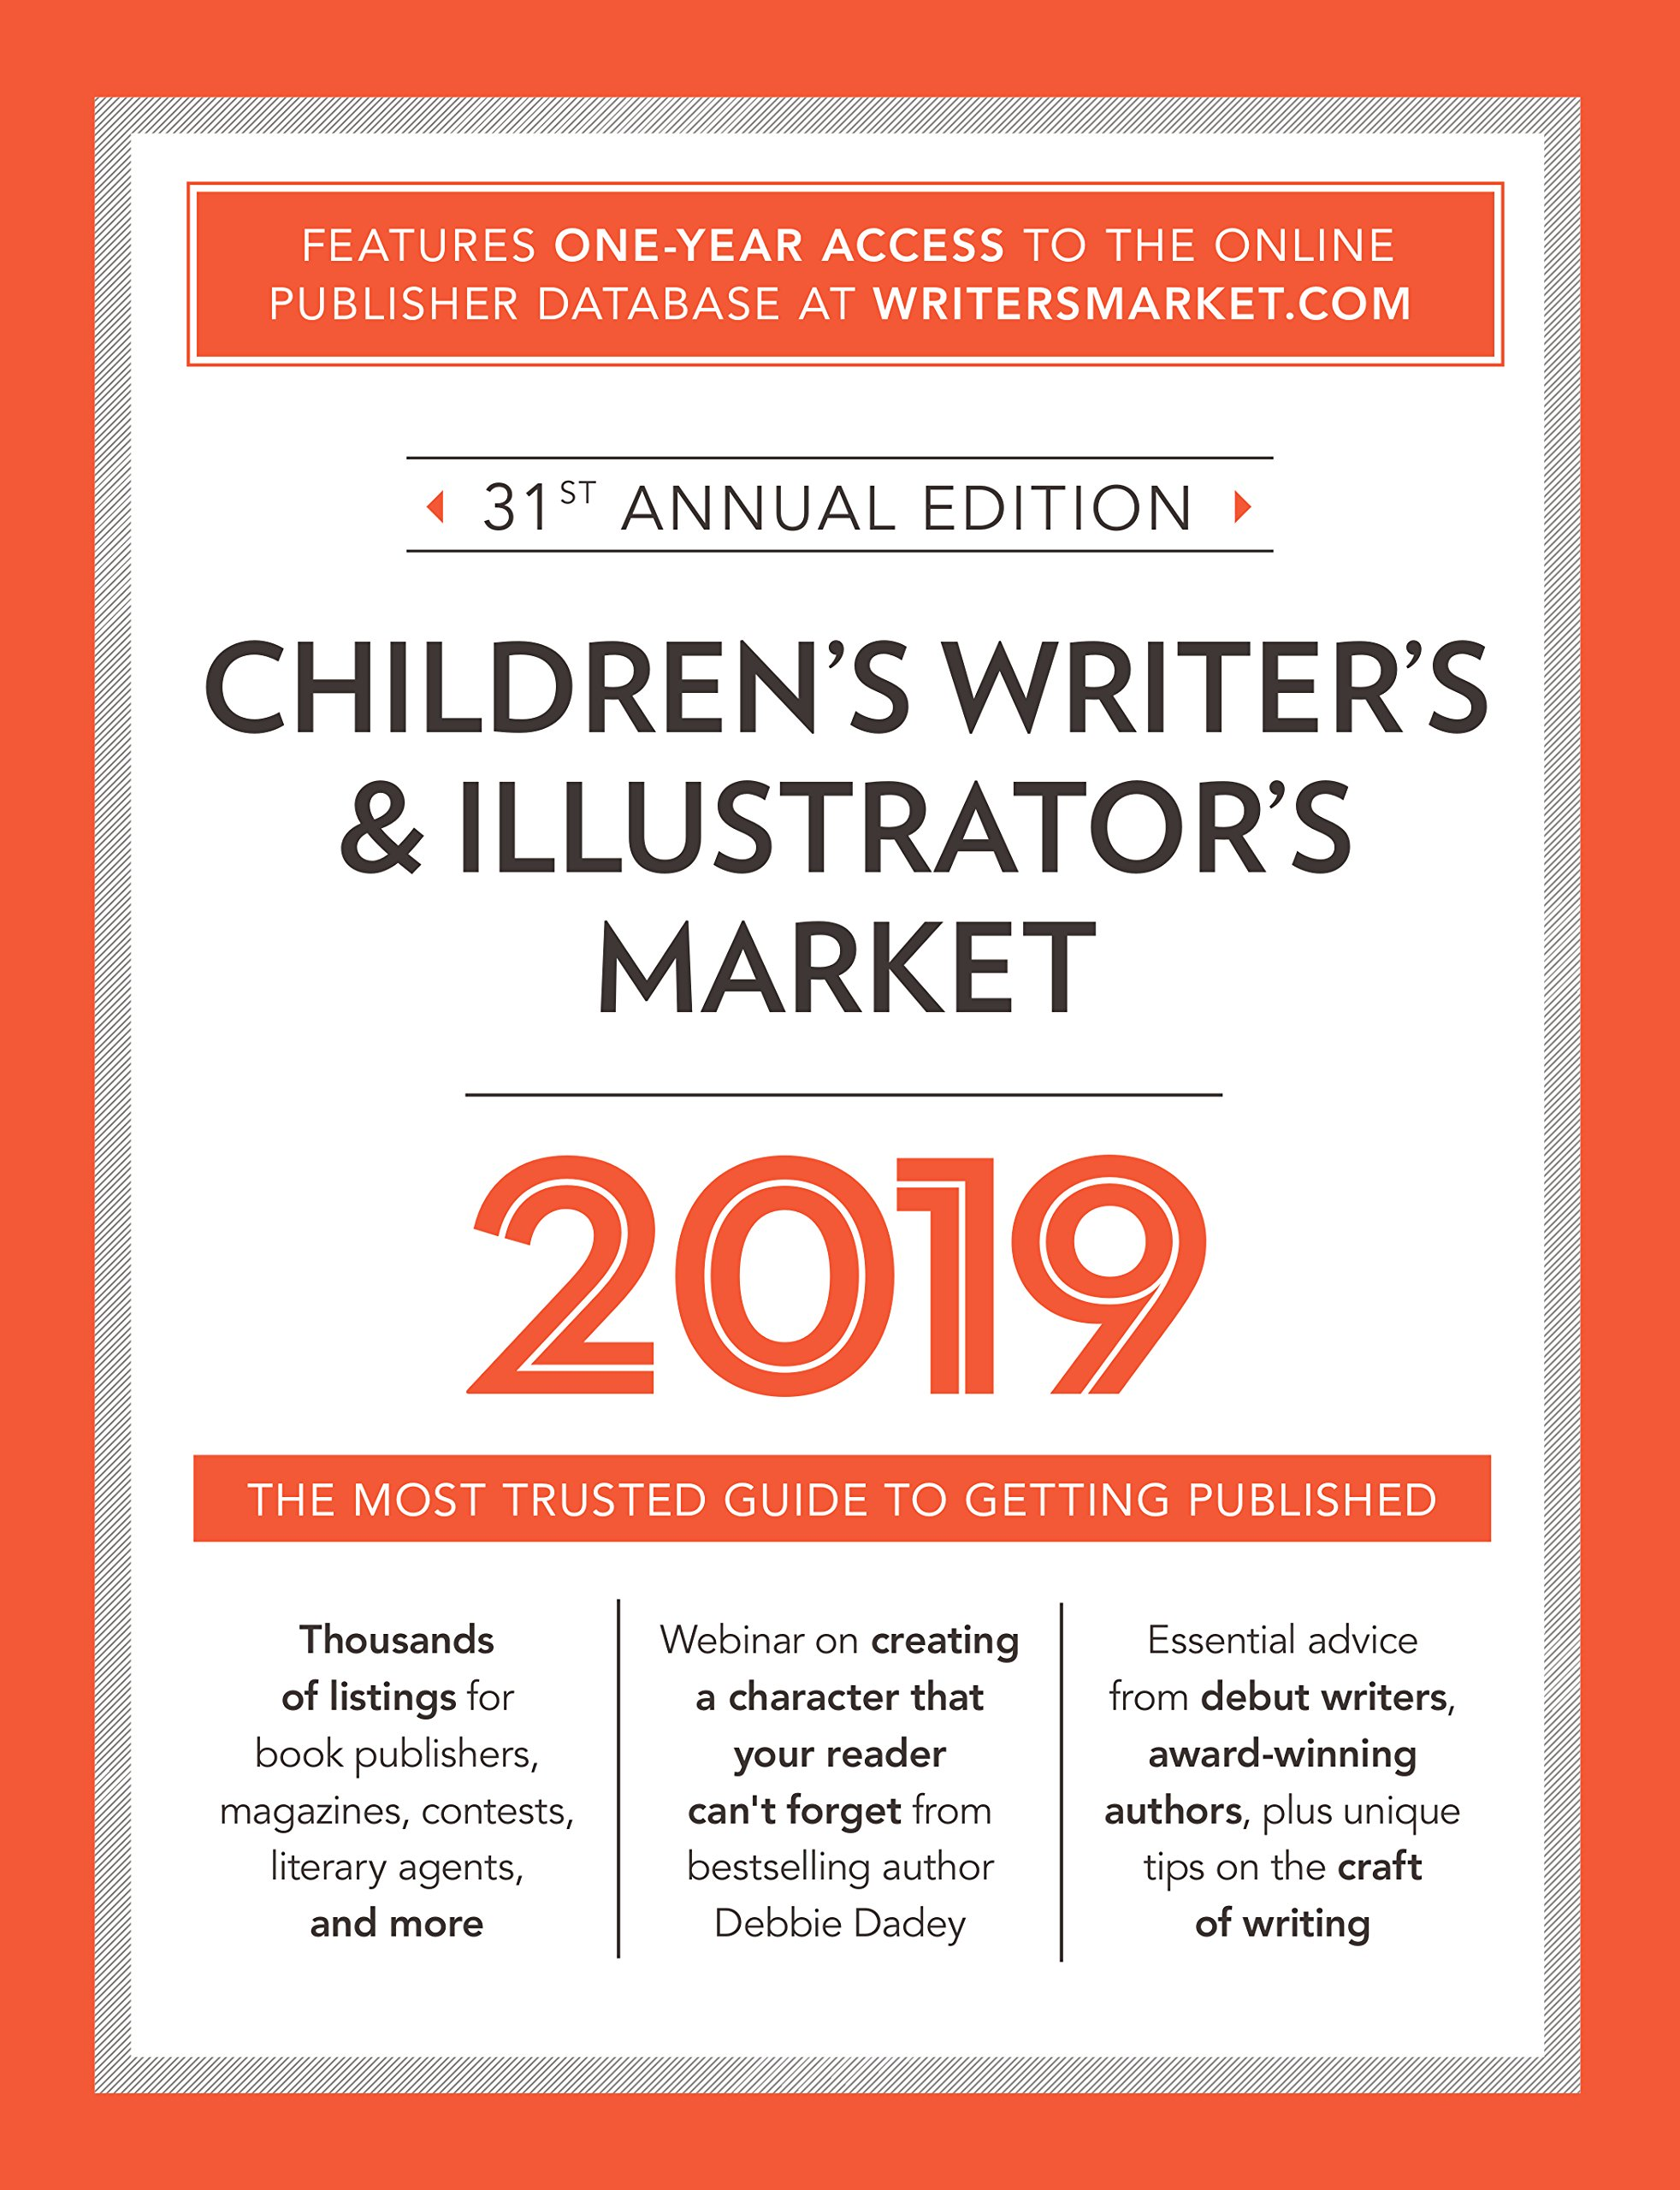 Children's Writer's & Illustrator's Market 2019: The Most Trusted Guide to Getting Published Paperback – 26 Oct 2018 Robert Lee Brewer Writer's Digest Books 1440354405 Education & Languages